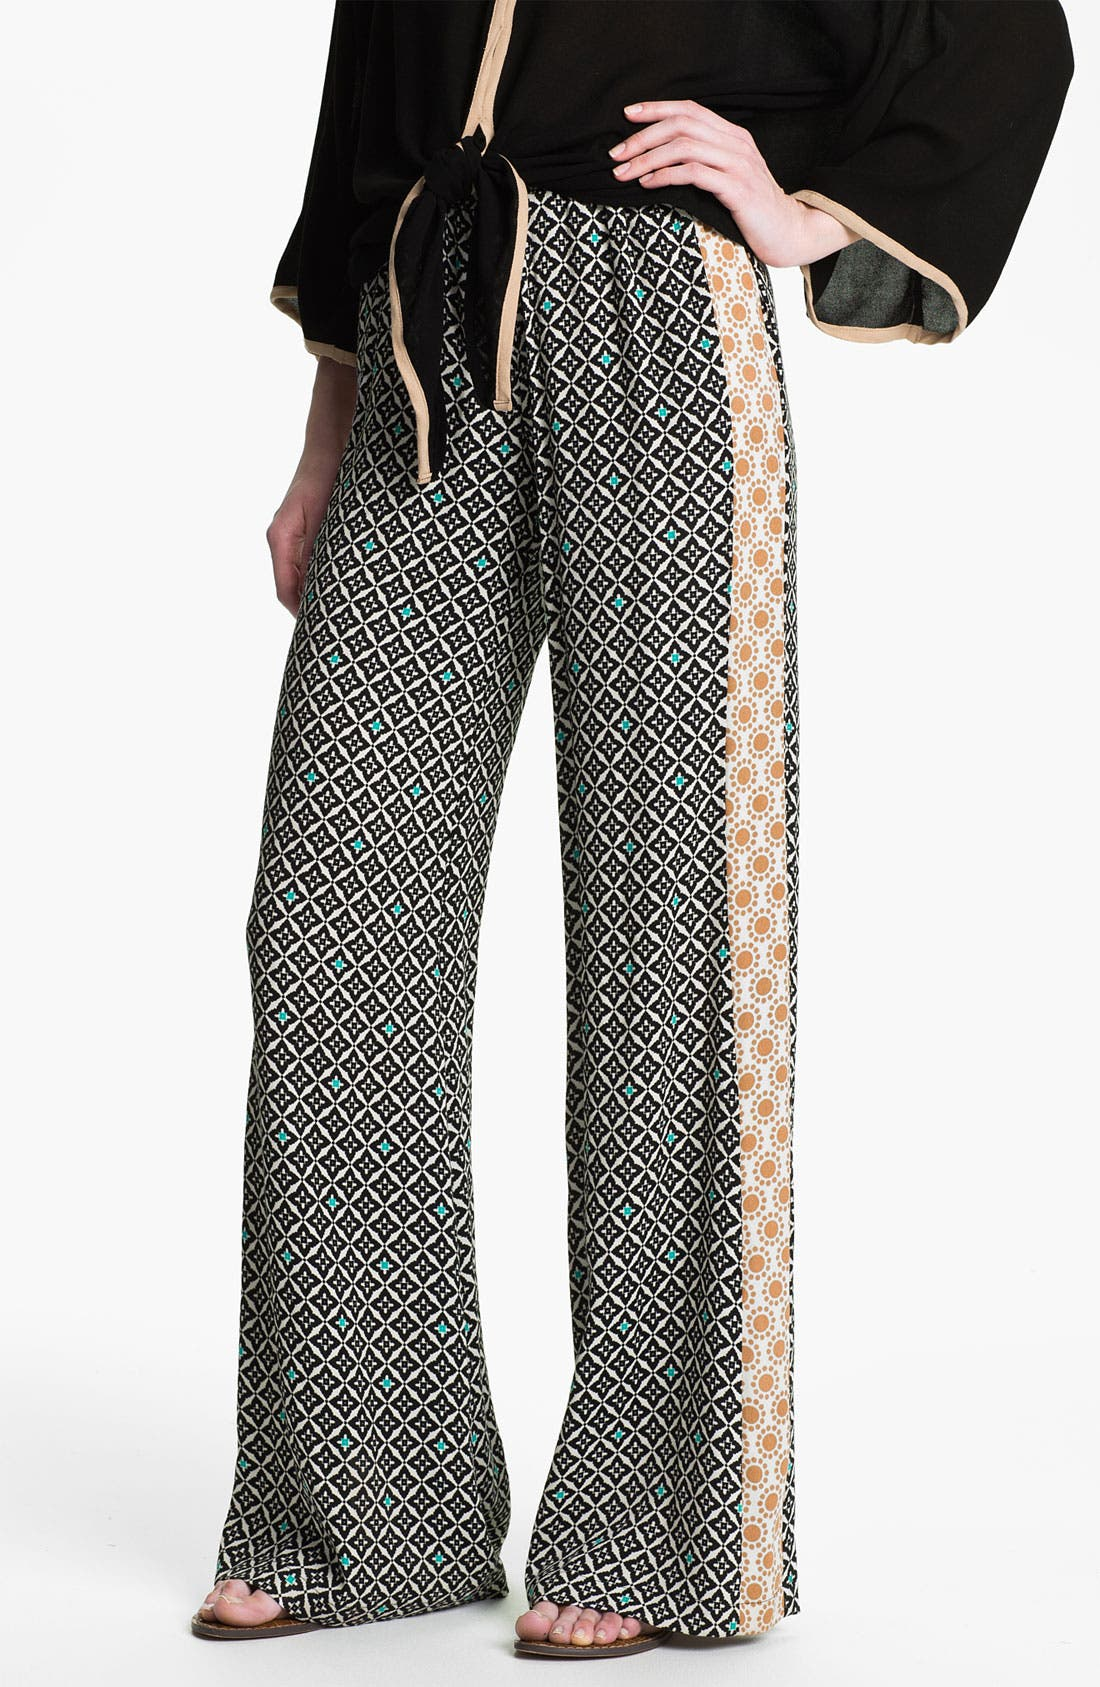 Alternate Image 1 Selected - Ella Moss 'Sun Tile' Mix Print Palazzo Pants